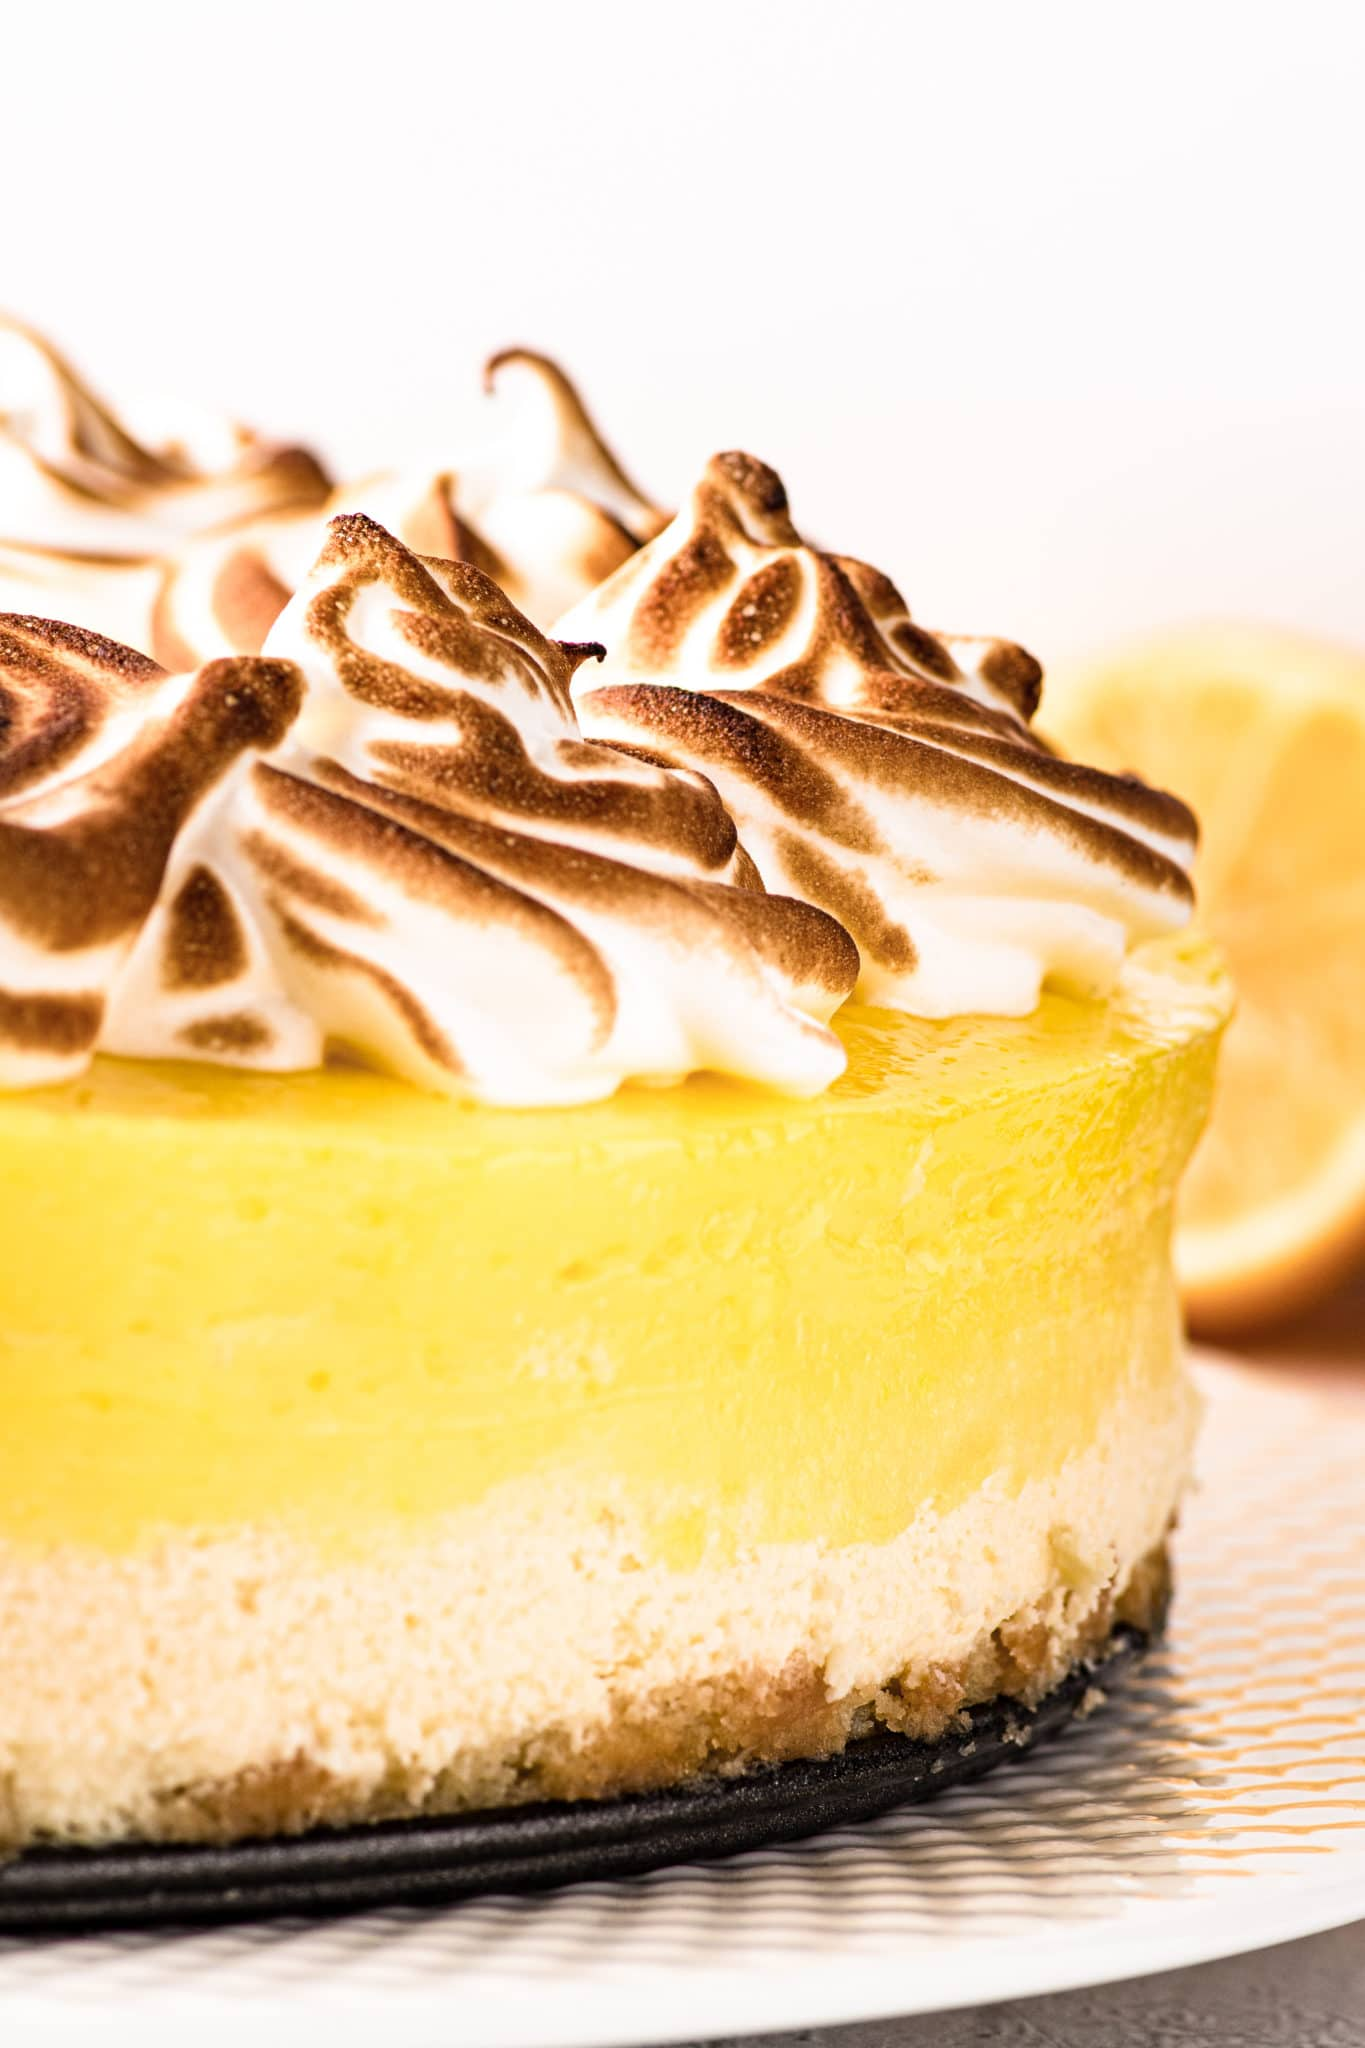 Close up photograph of a bright lemon curd topped cheesecake with toasted swirled meringue.